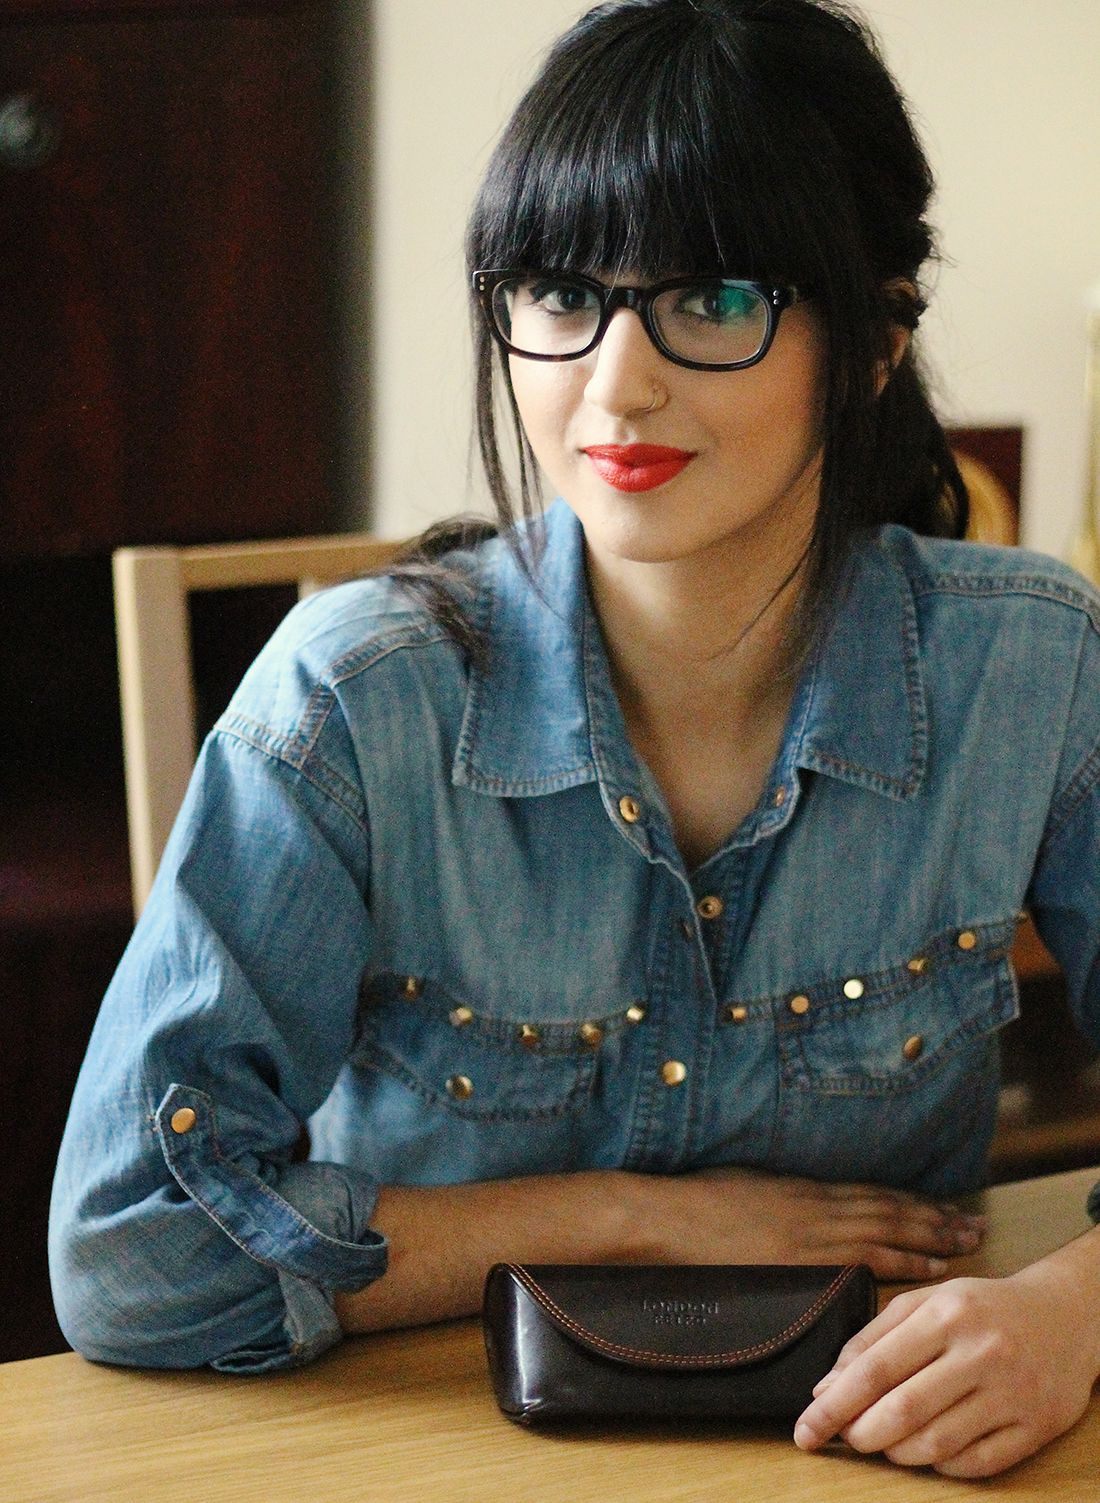 Bangs With Glasses Hairstyles 16 Bangs And Glasses Hairstyles With Glasses Dark Hair Bangs